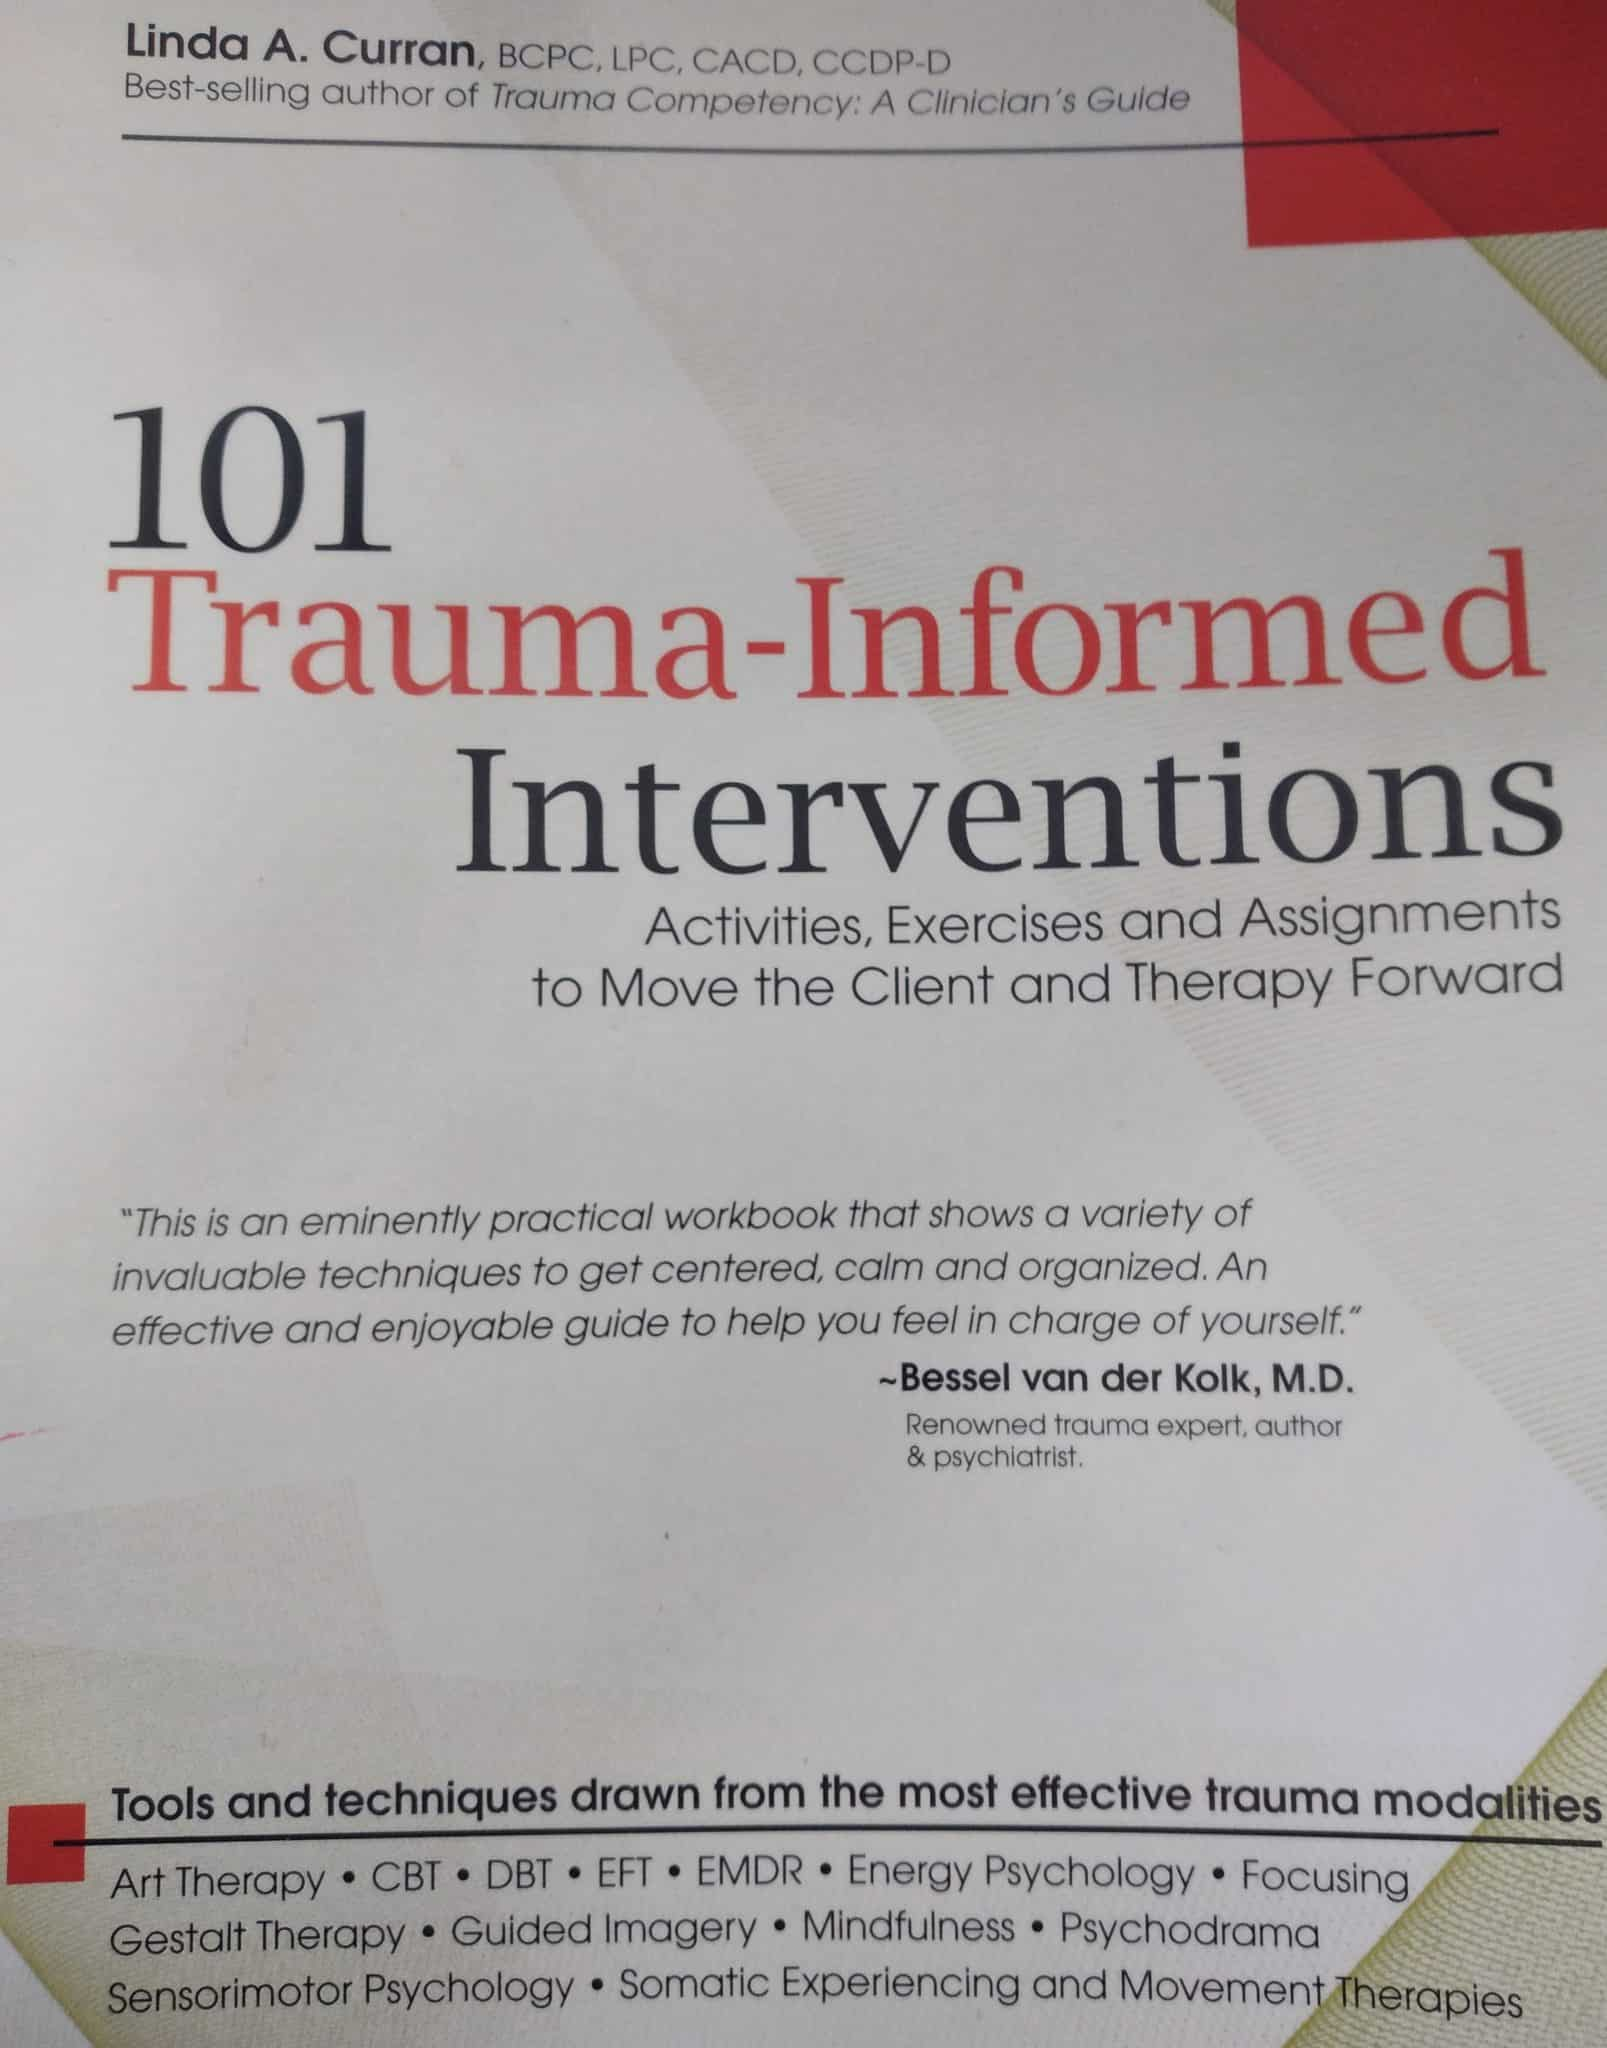 101 Trauma-informed Interventions. Activities, Exercises And Assignments To Move The Client And Therapy Forward